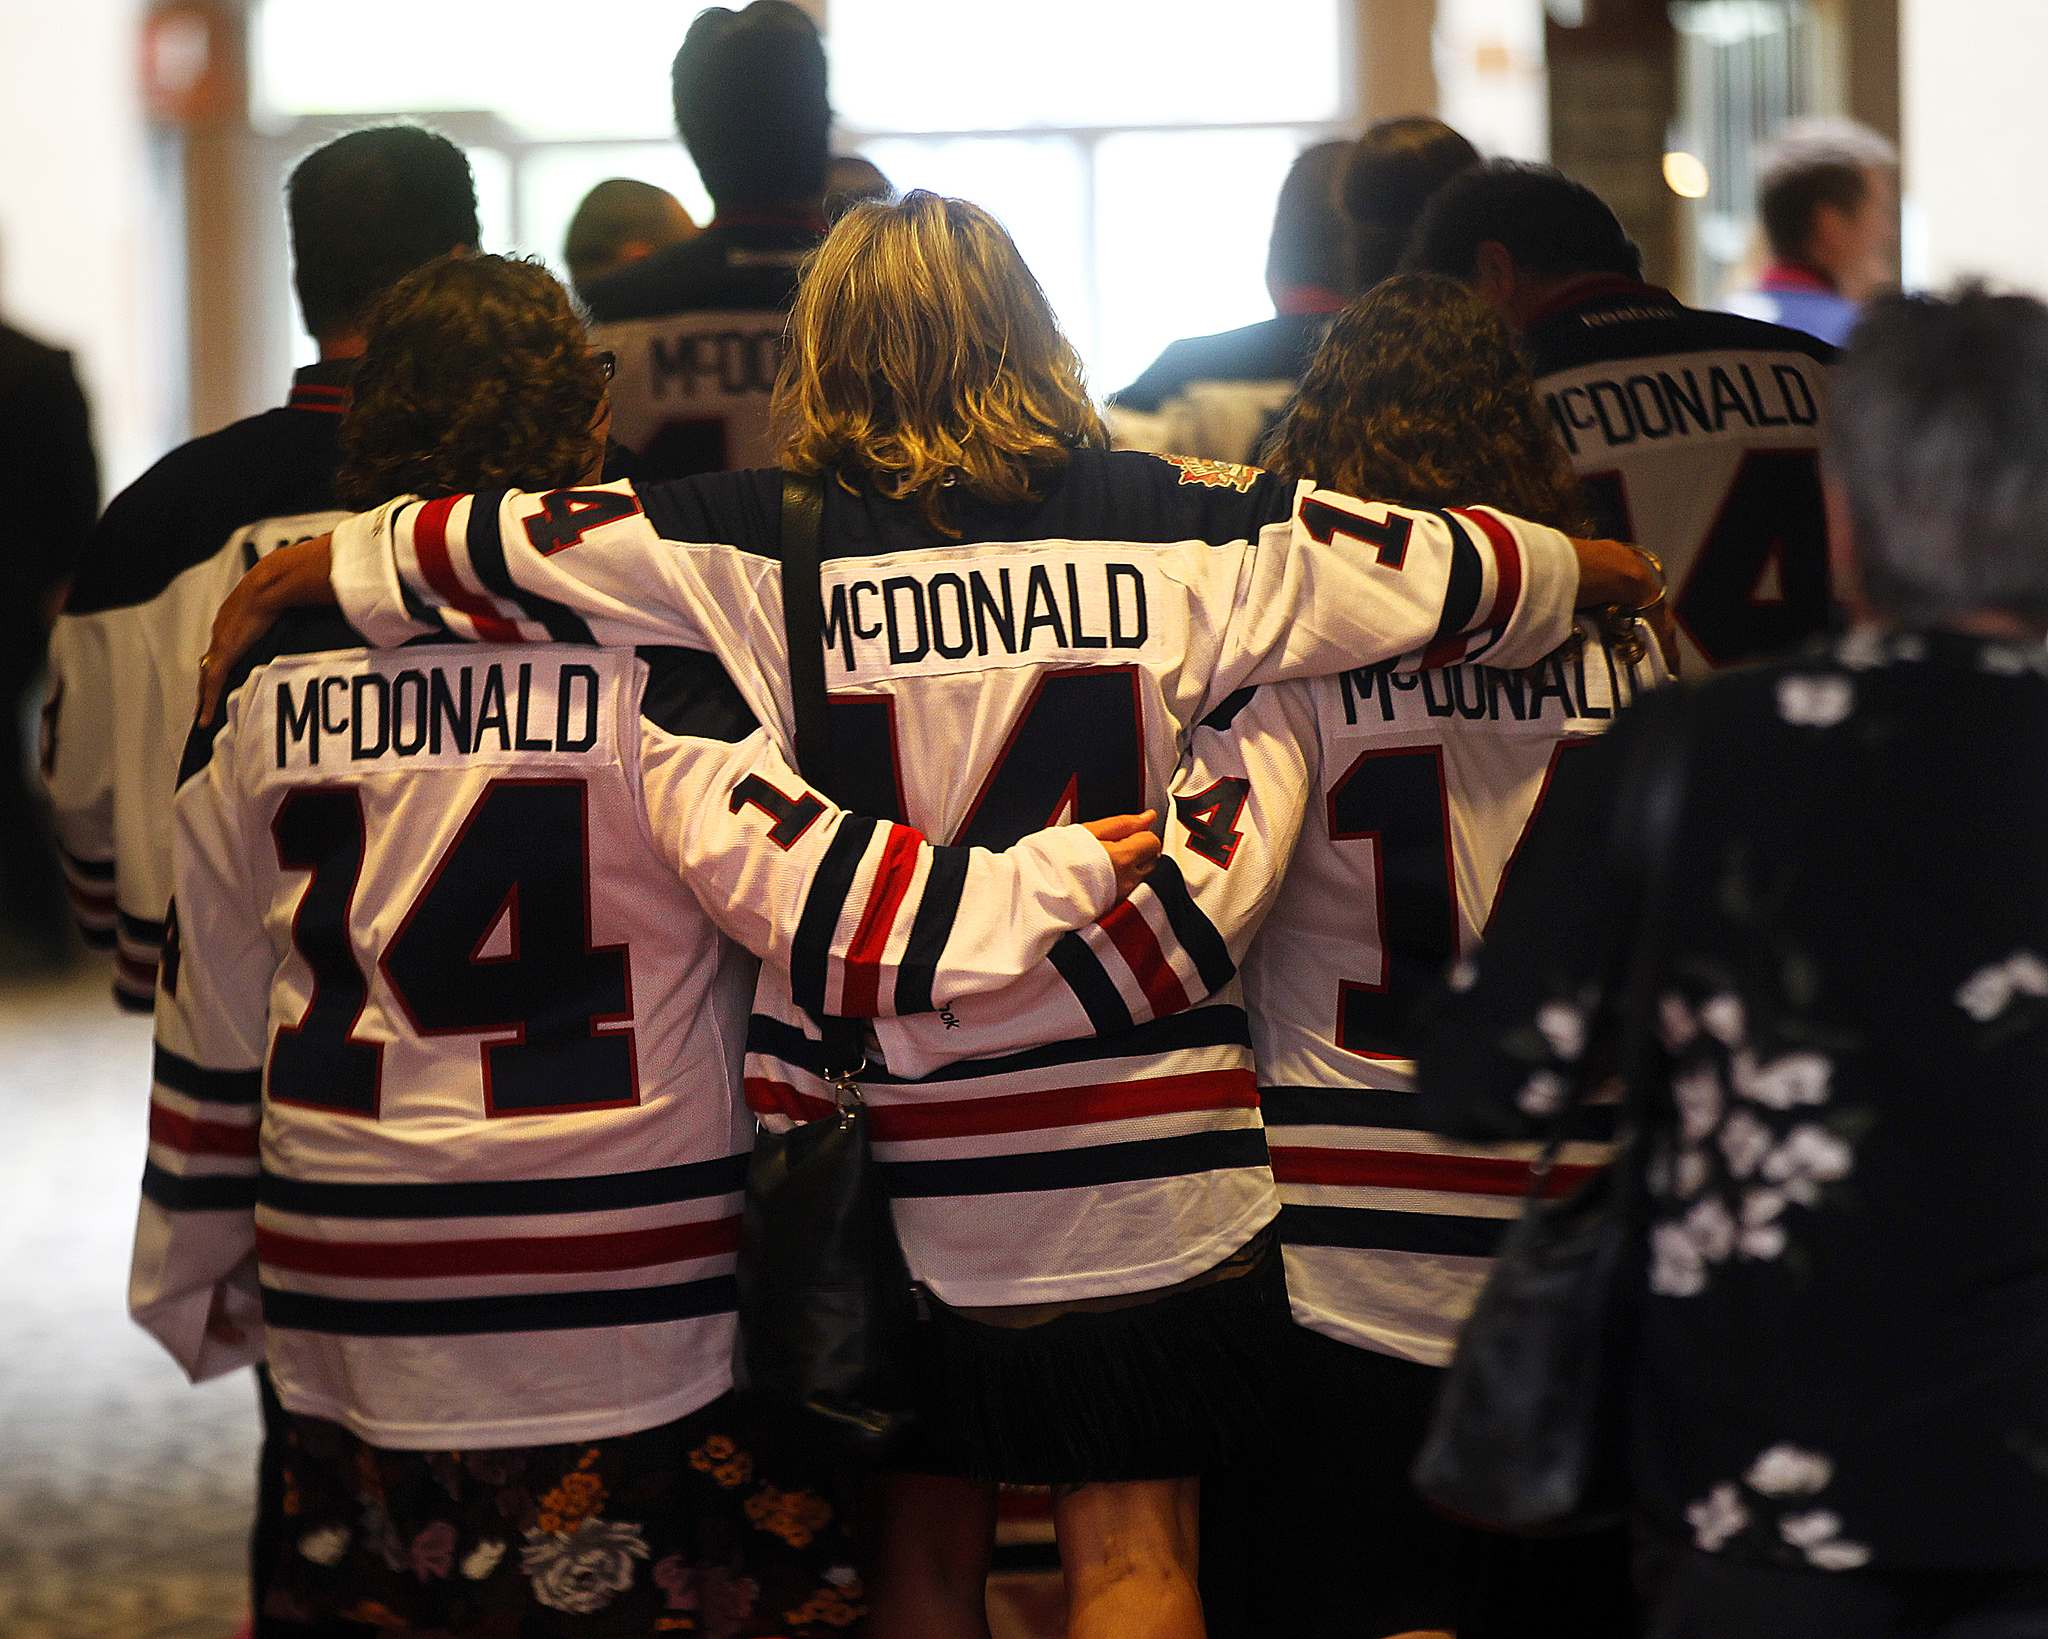 PHIL HOSSACK / WINNIPEG FREE PRESS</p><p>McDonald's family, wearing Winnipeg Jets Jerseys with his name on the back, leave the memorial celebration.</p>